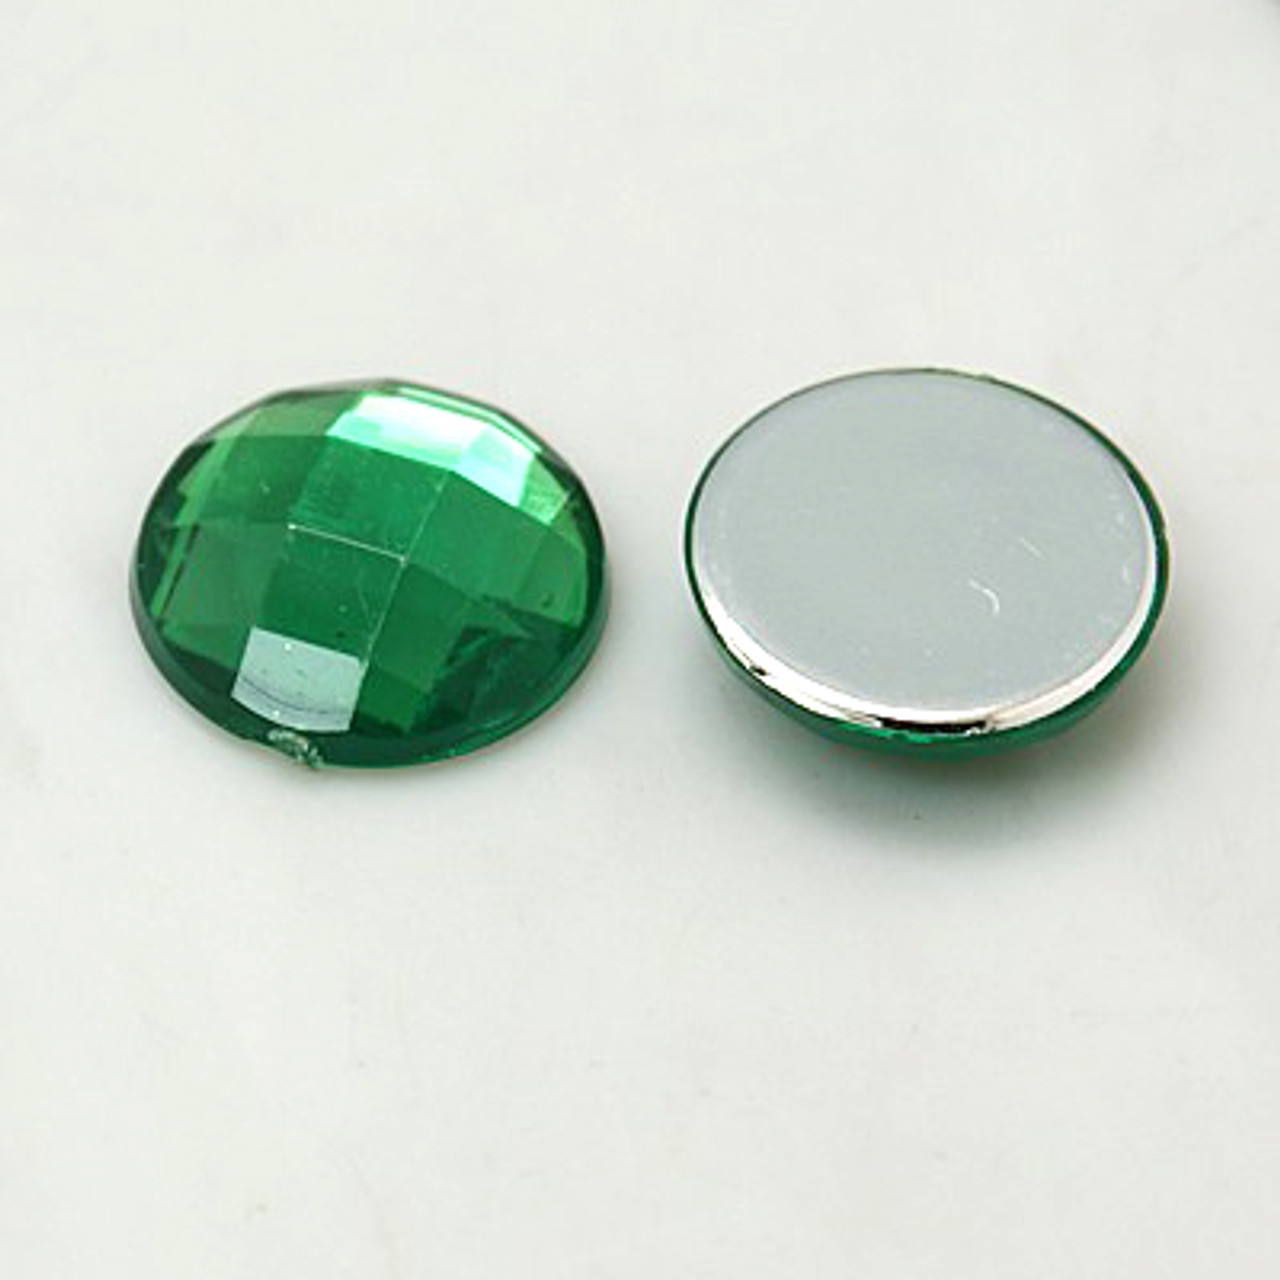 Imitation Taiwan Acrylic Rhinestone Cabochons, Faceted, Half Round/Dome, Green, 18x5mm (6pk)